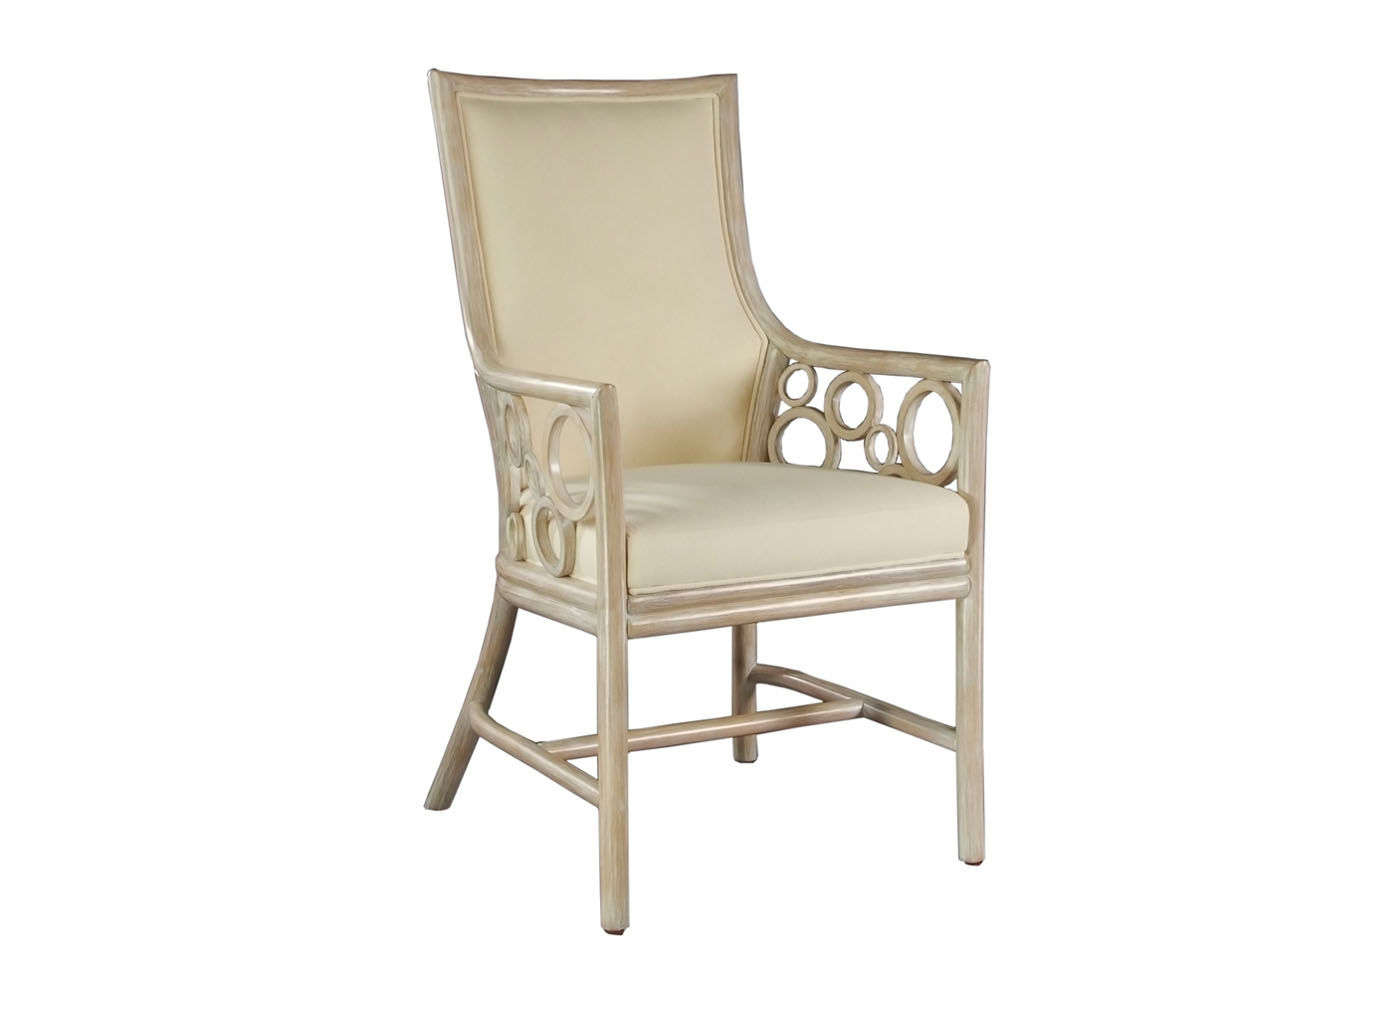 dining chair upholstery outdoor folding with side table fabric for chairs large and beautiful